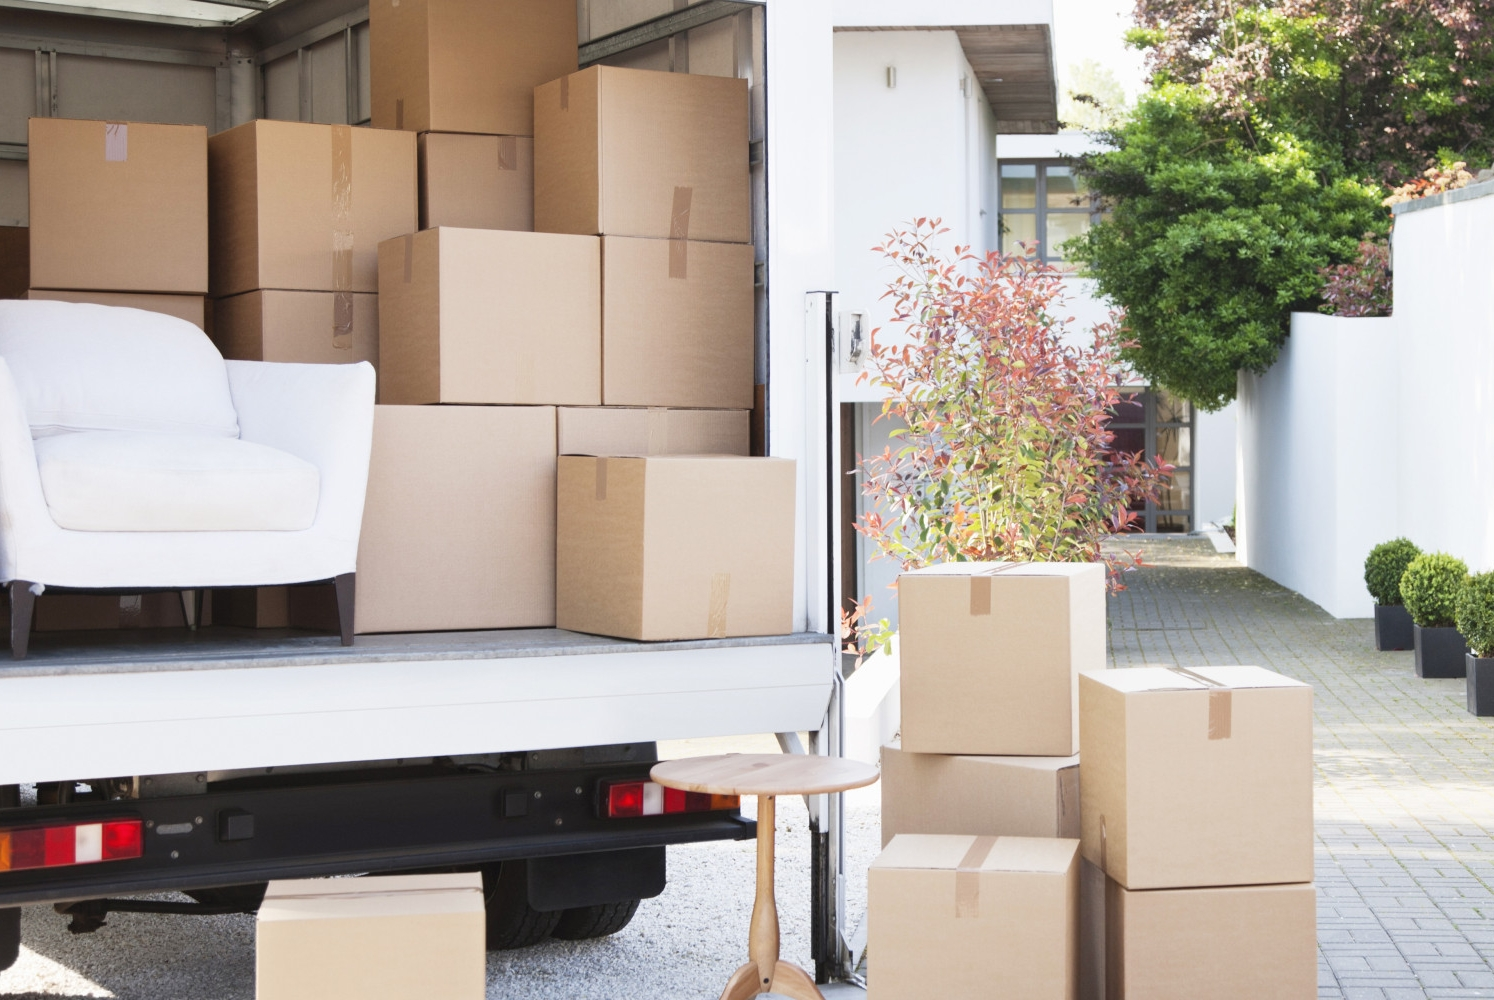 Move truck management - The day of a move can be hectic and chaotic with pick-ups from your previous home, storage, and furniture stores. Your Concierge will plan the move truck logistics down to the minute.